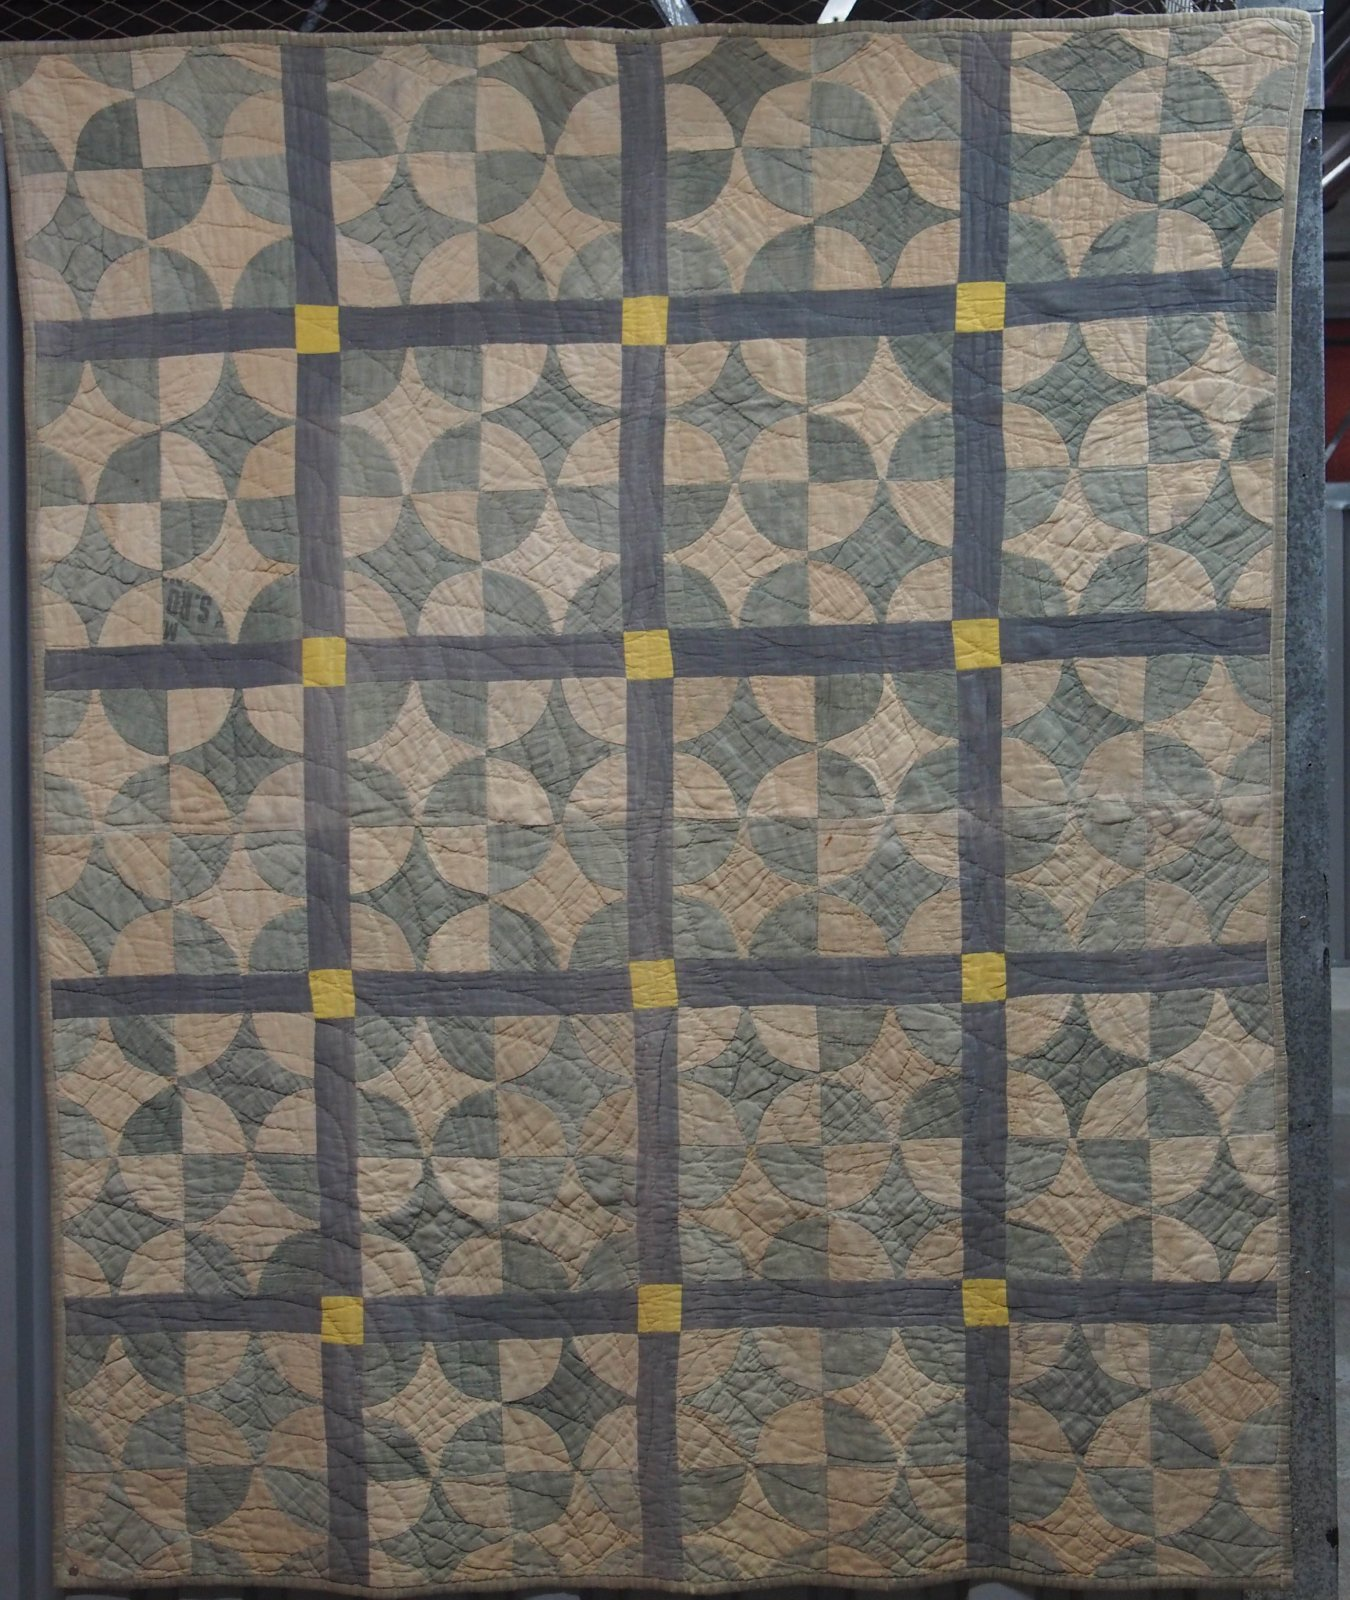 ROBBING PETER TO PAY PAUL VINTAGE QUILT